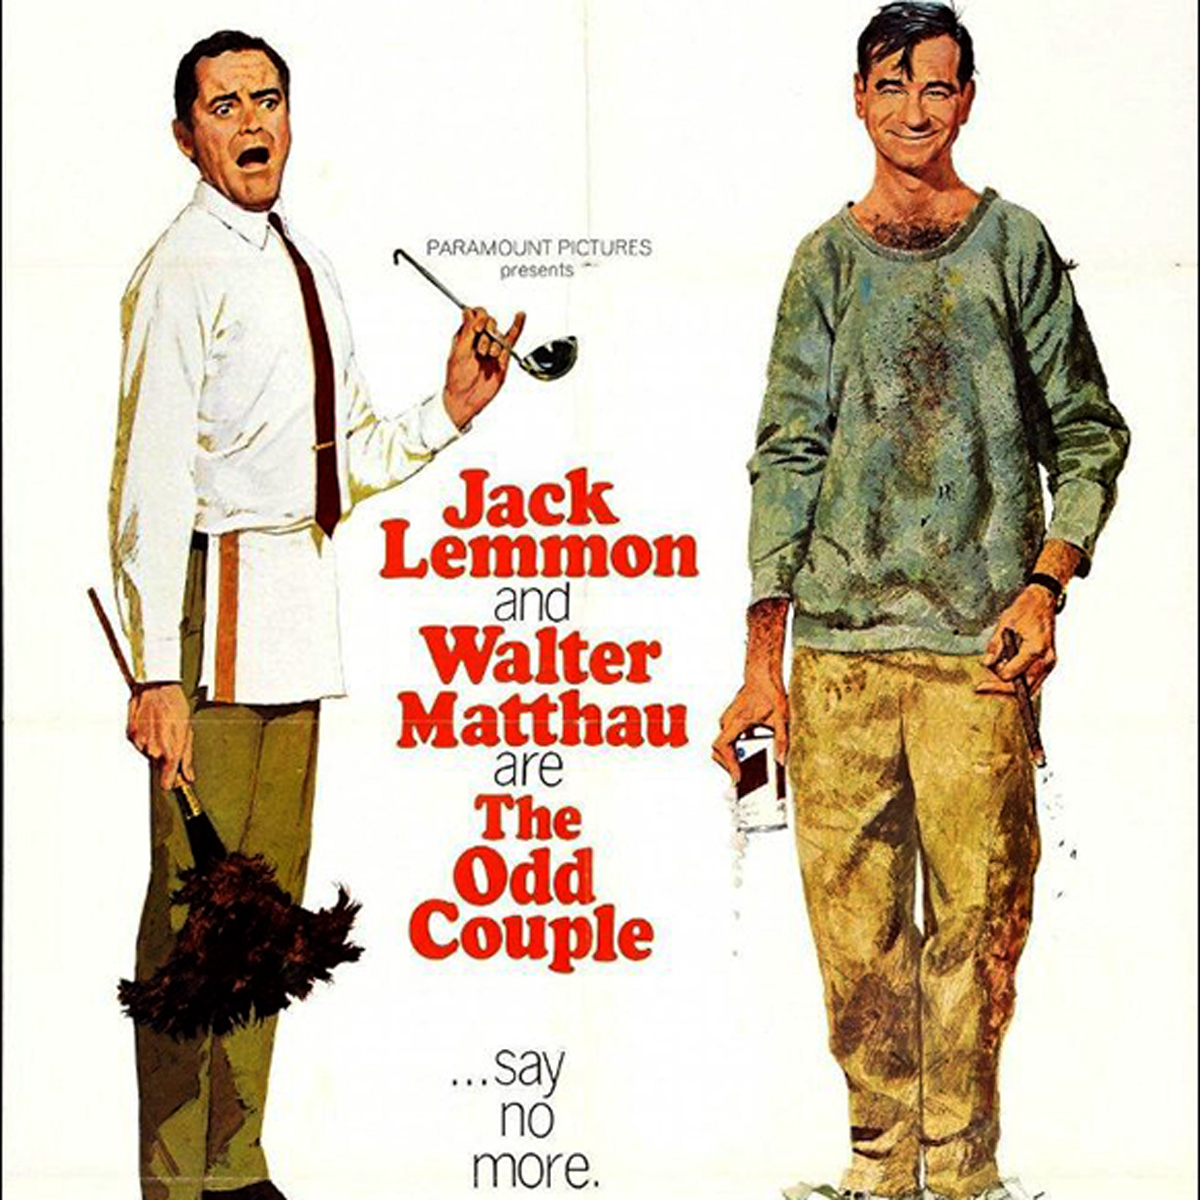 ISTYA Odd Couple movie review 1968